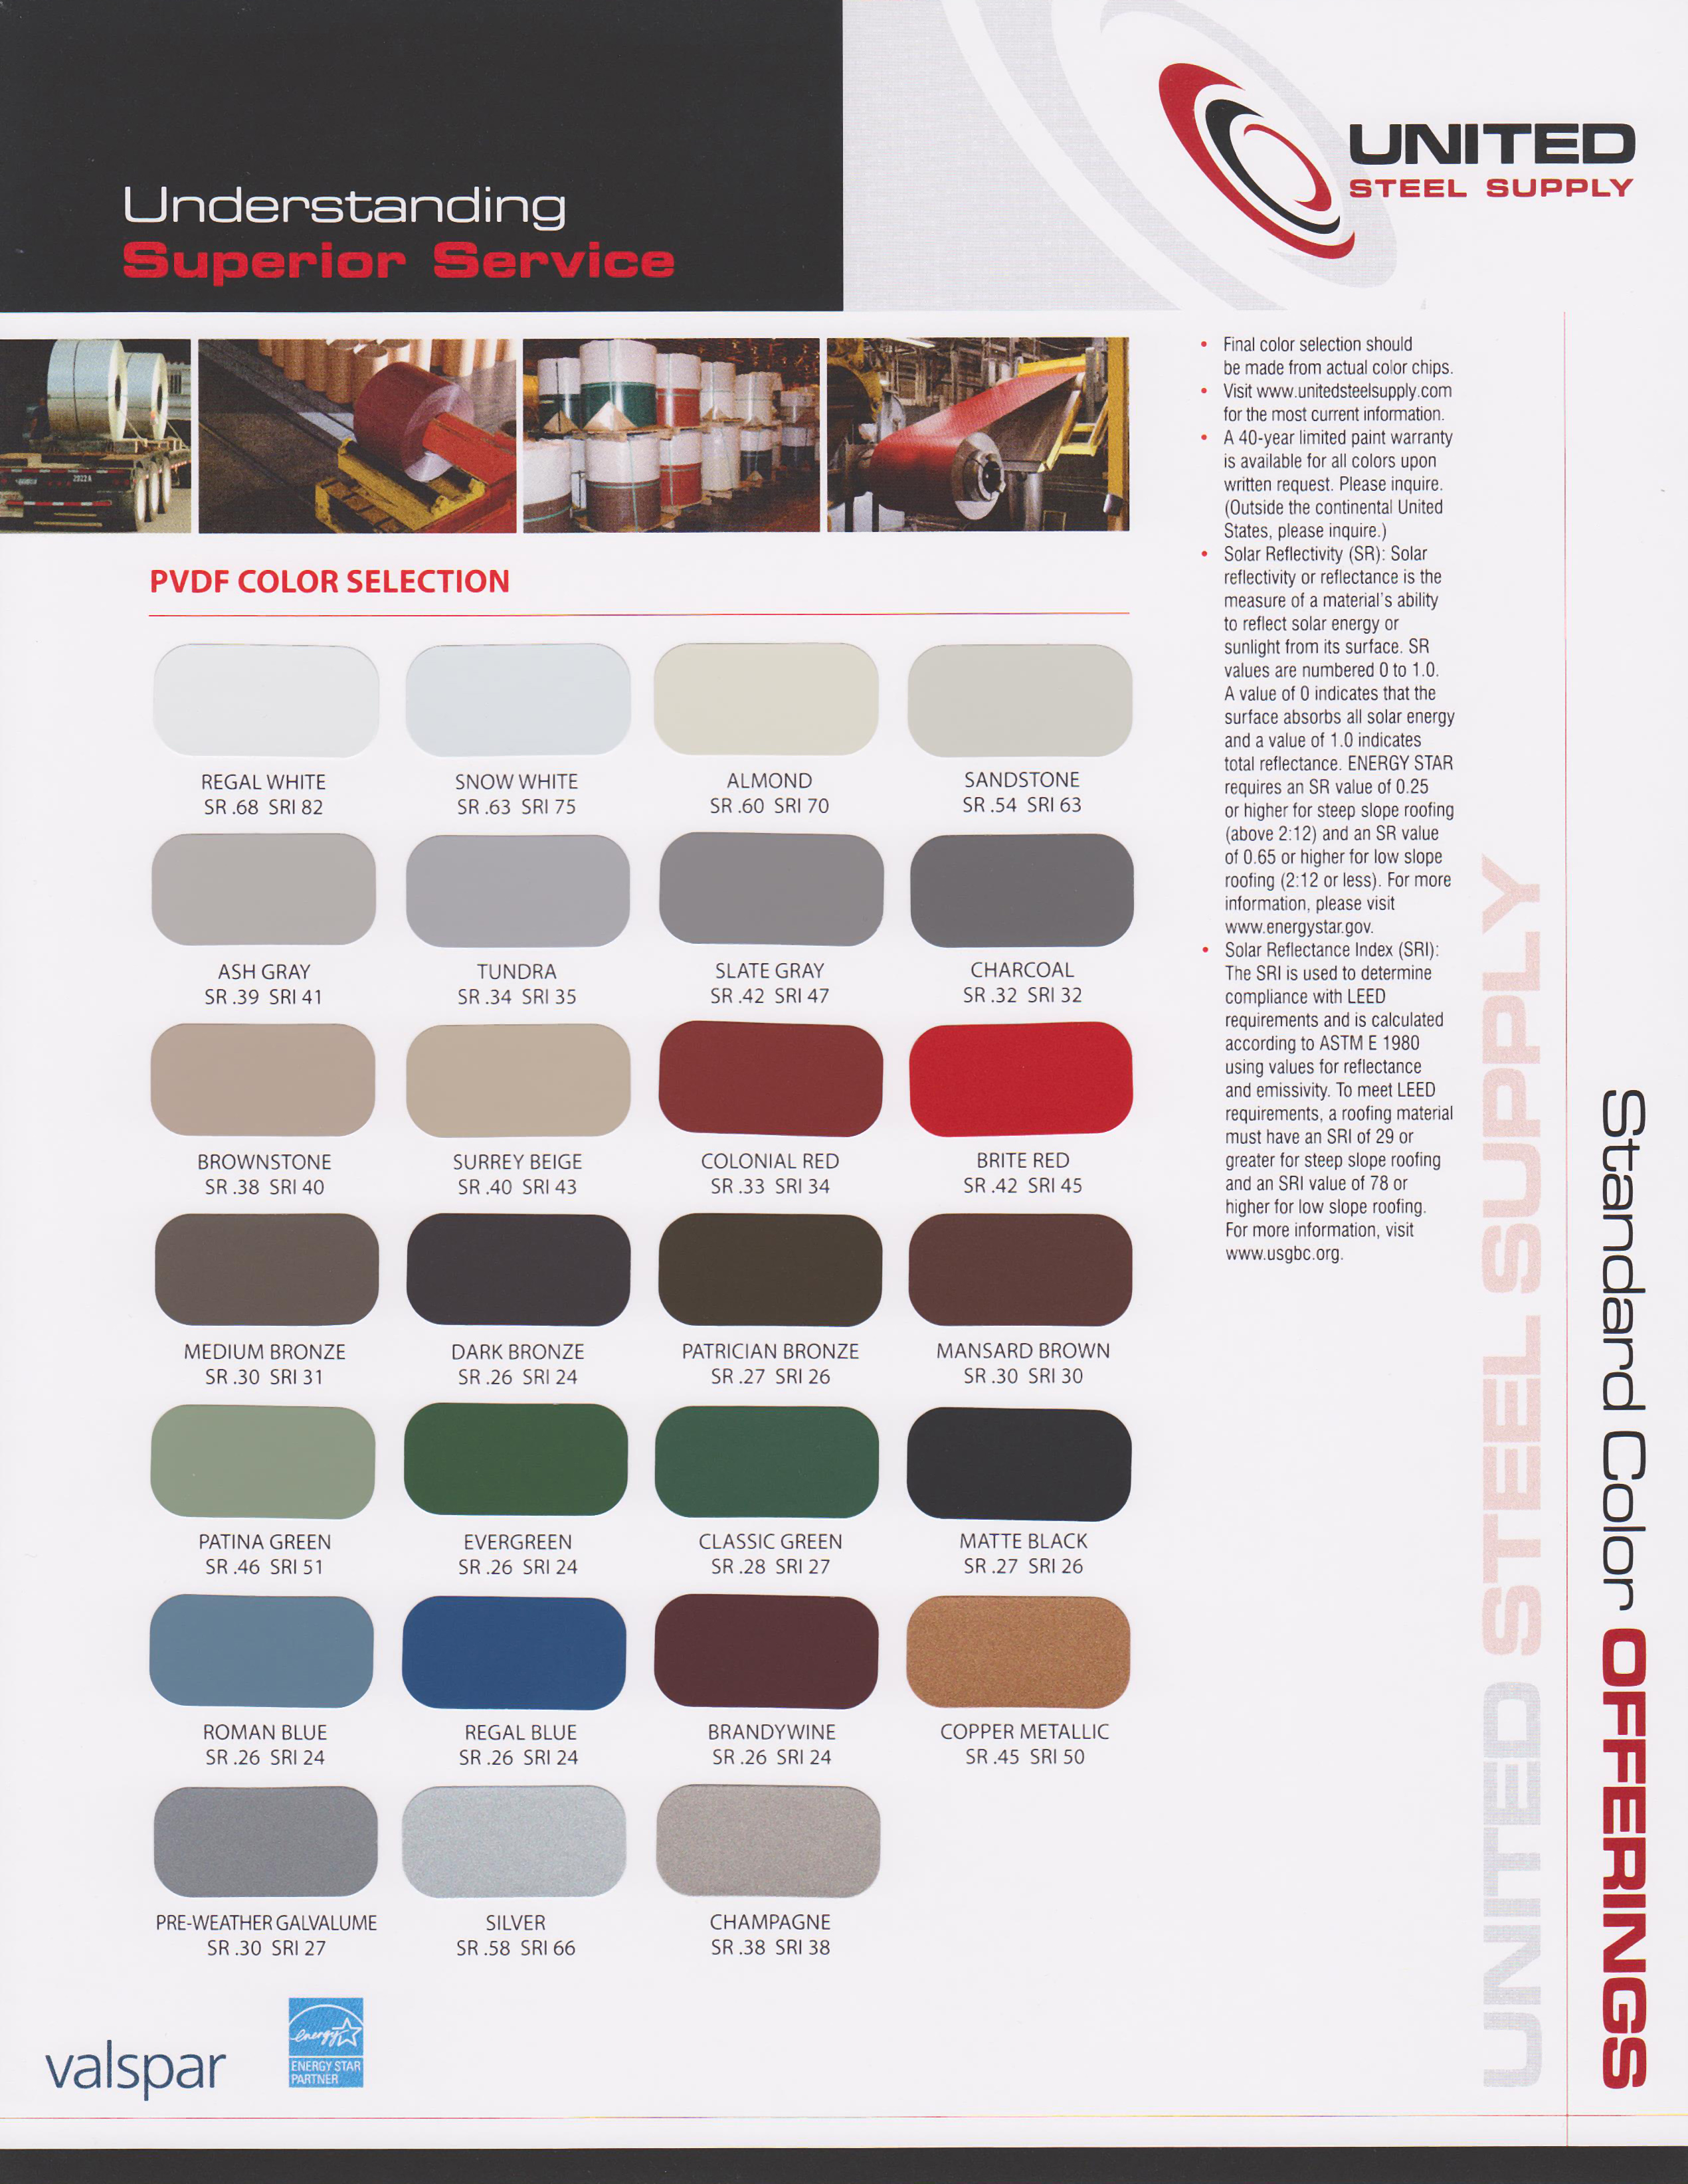 Color selections united steel supply valspar pvdf color chart nvjuhfo Choice Image